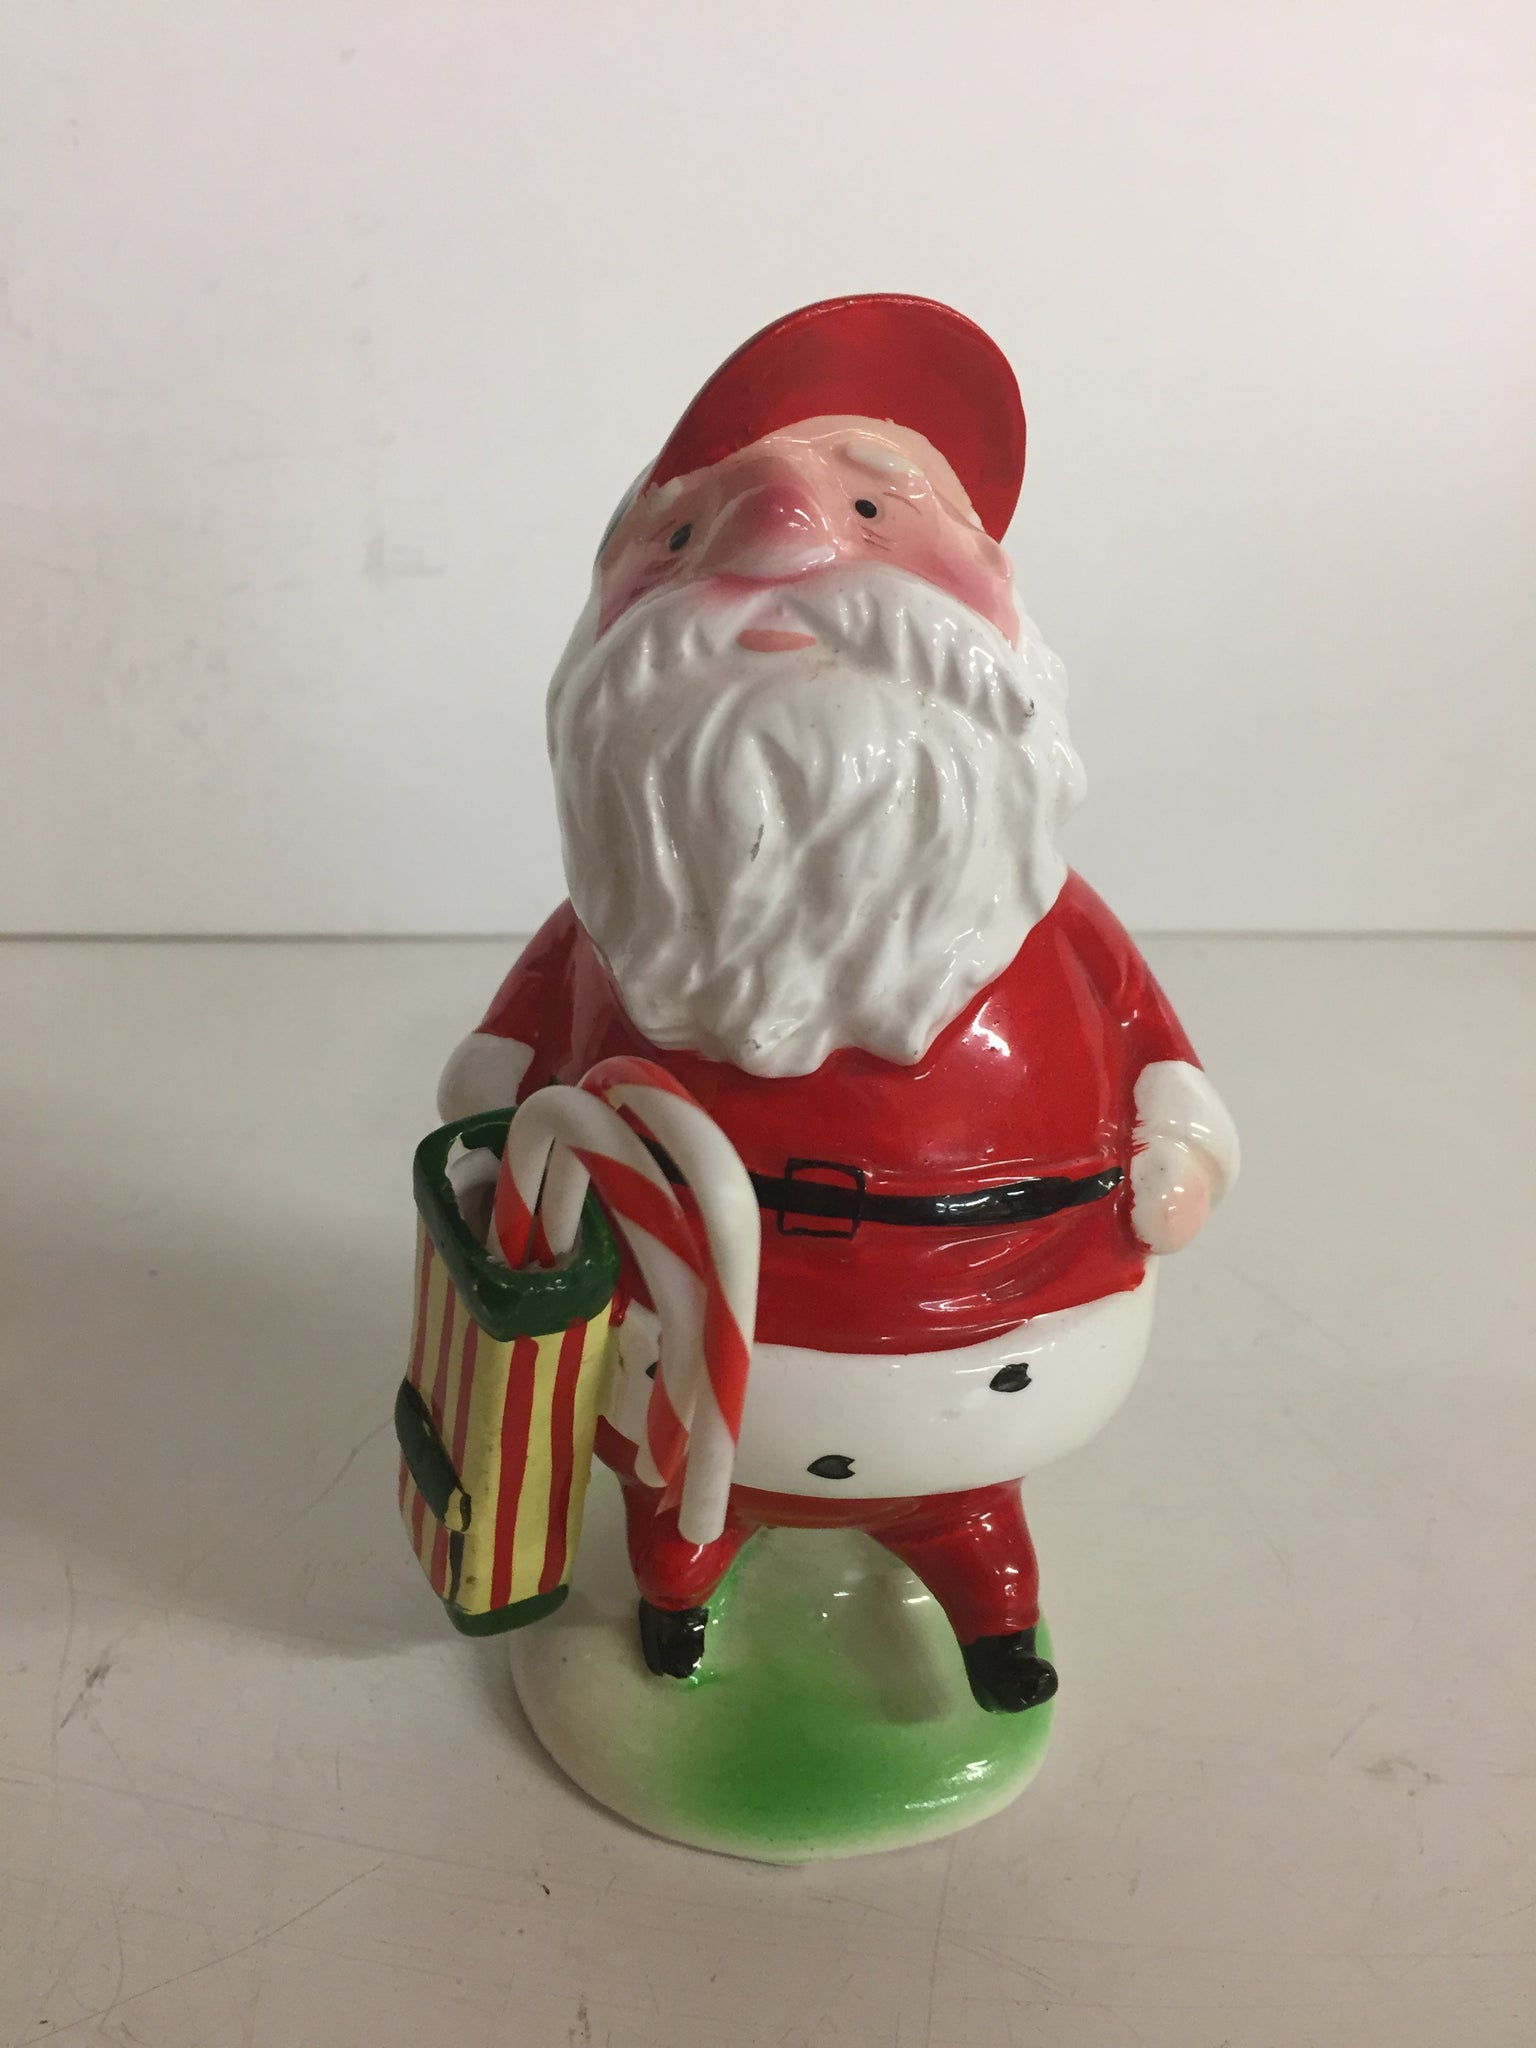 Vintage Golfing W/ Candy Cains Ceramic Santa Clause Figurine Enesco Japan